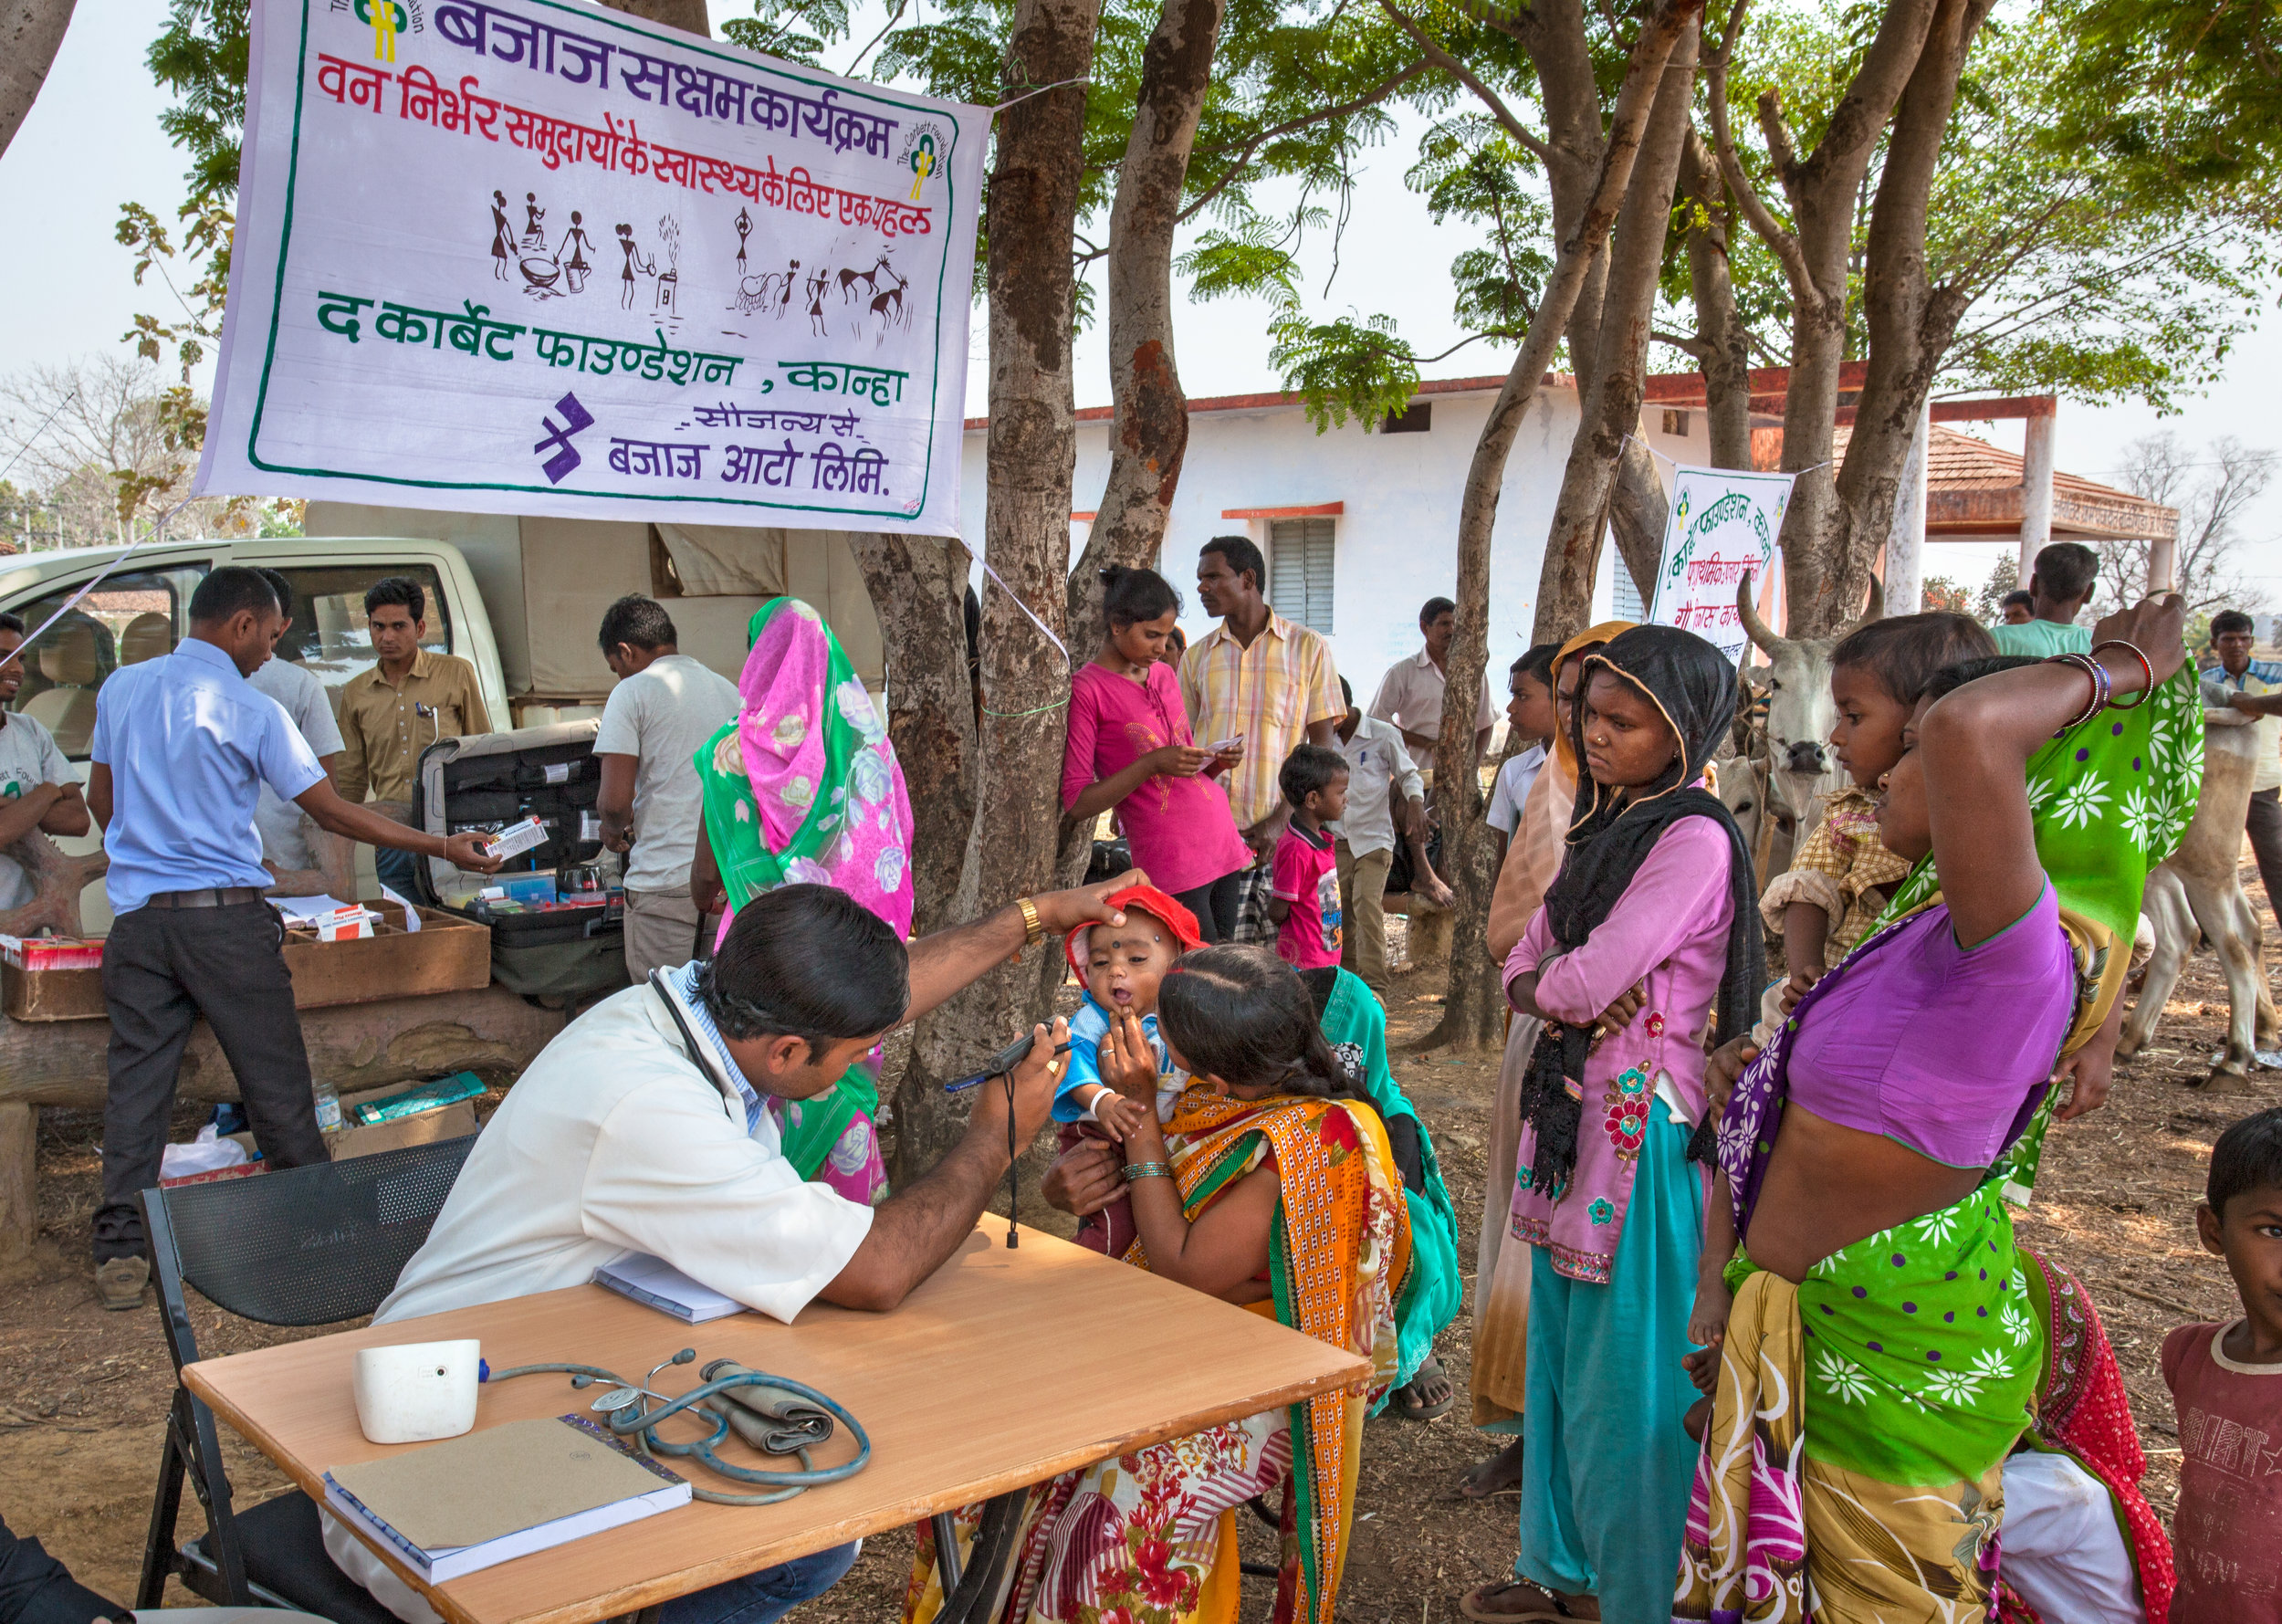 Mobile medical clinics provide healthcare for rural villages. Without TFC, locals would travel almost 50km to find a similar care.